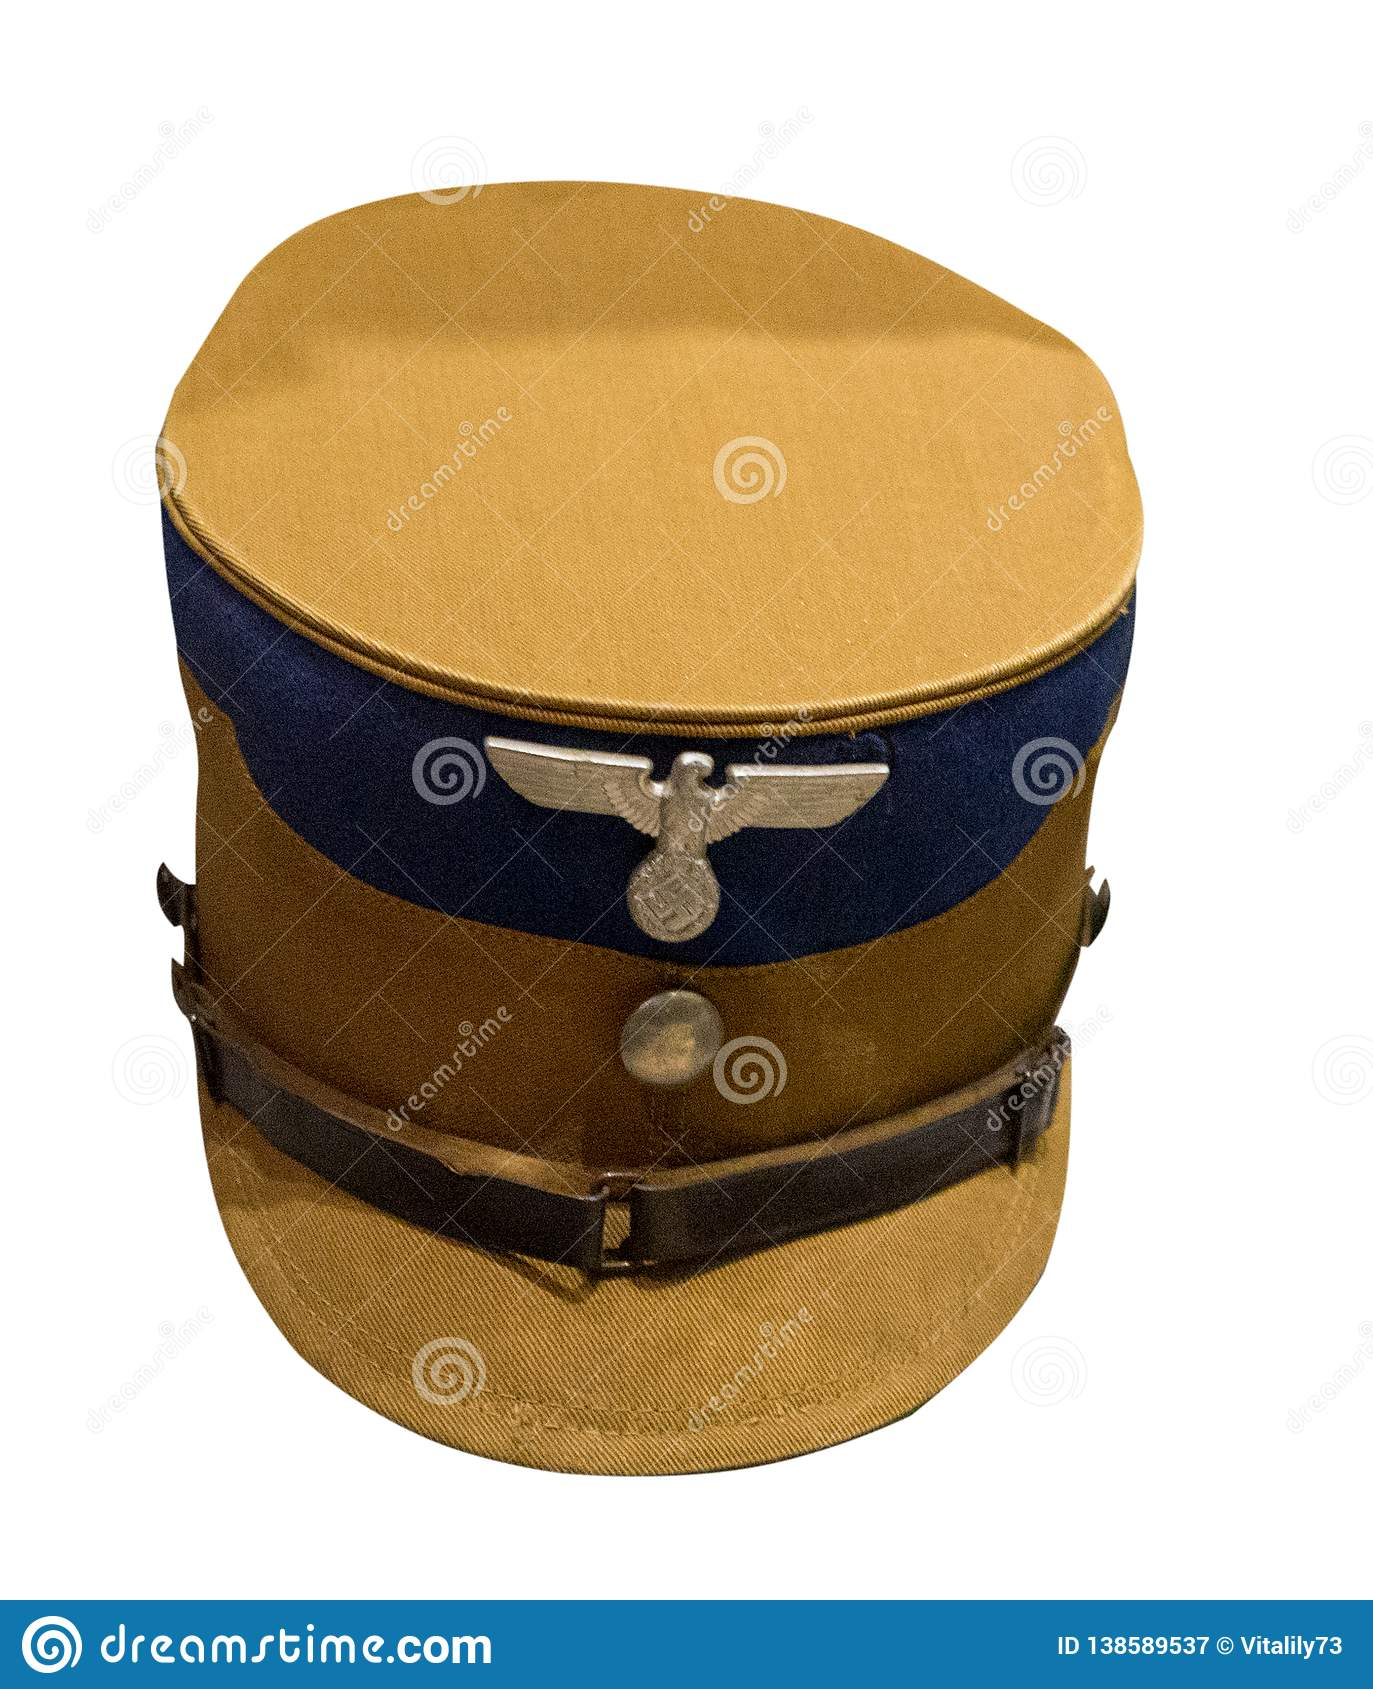 German soldier`s cap isolated on white background. peaked cap of a German soldier during the Second World War